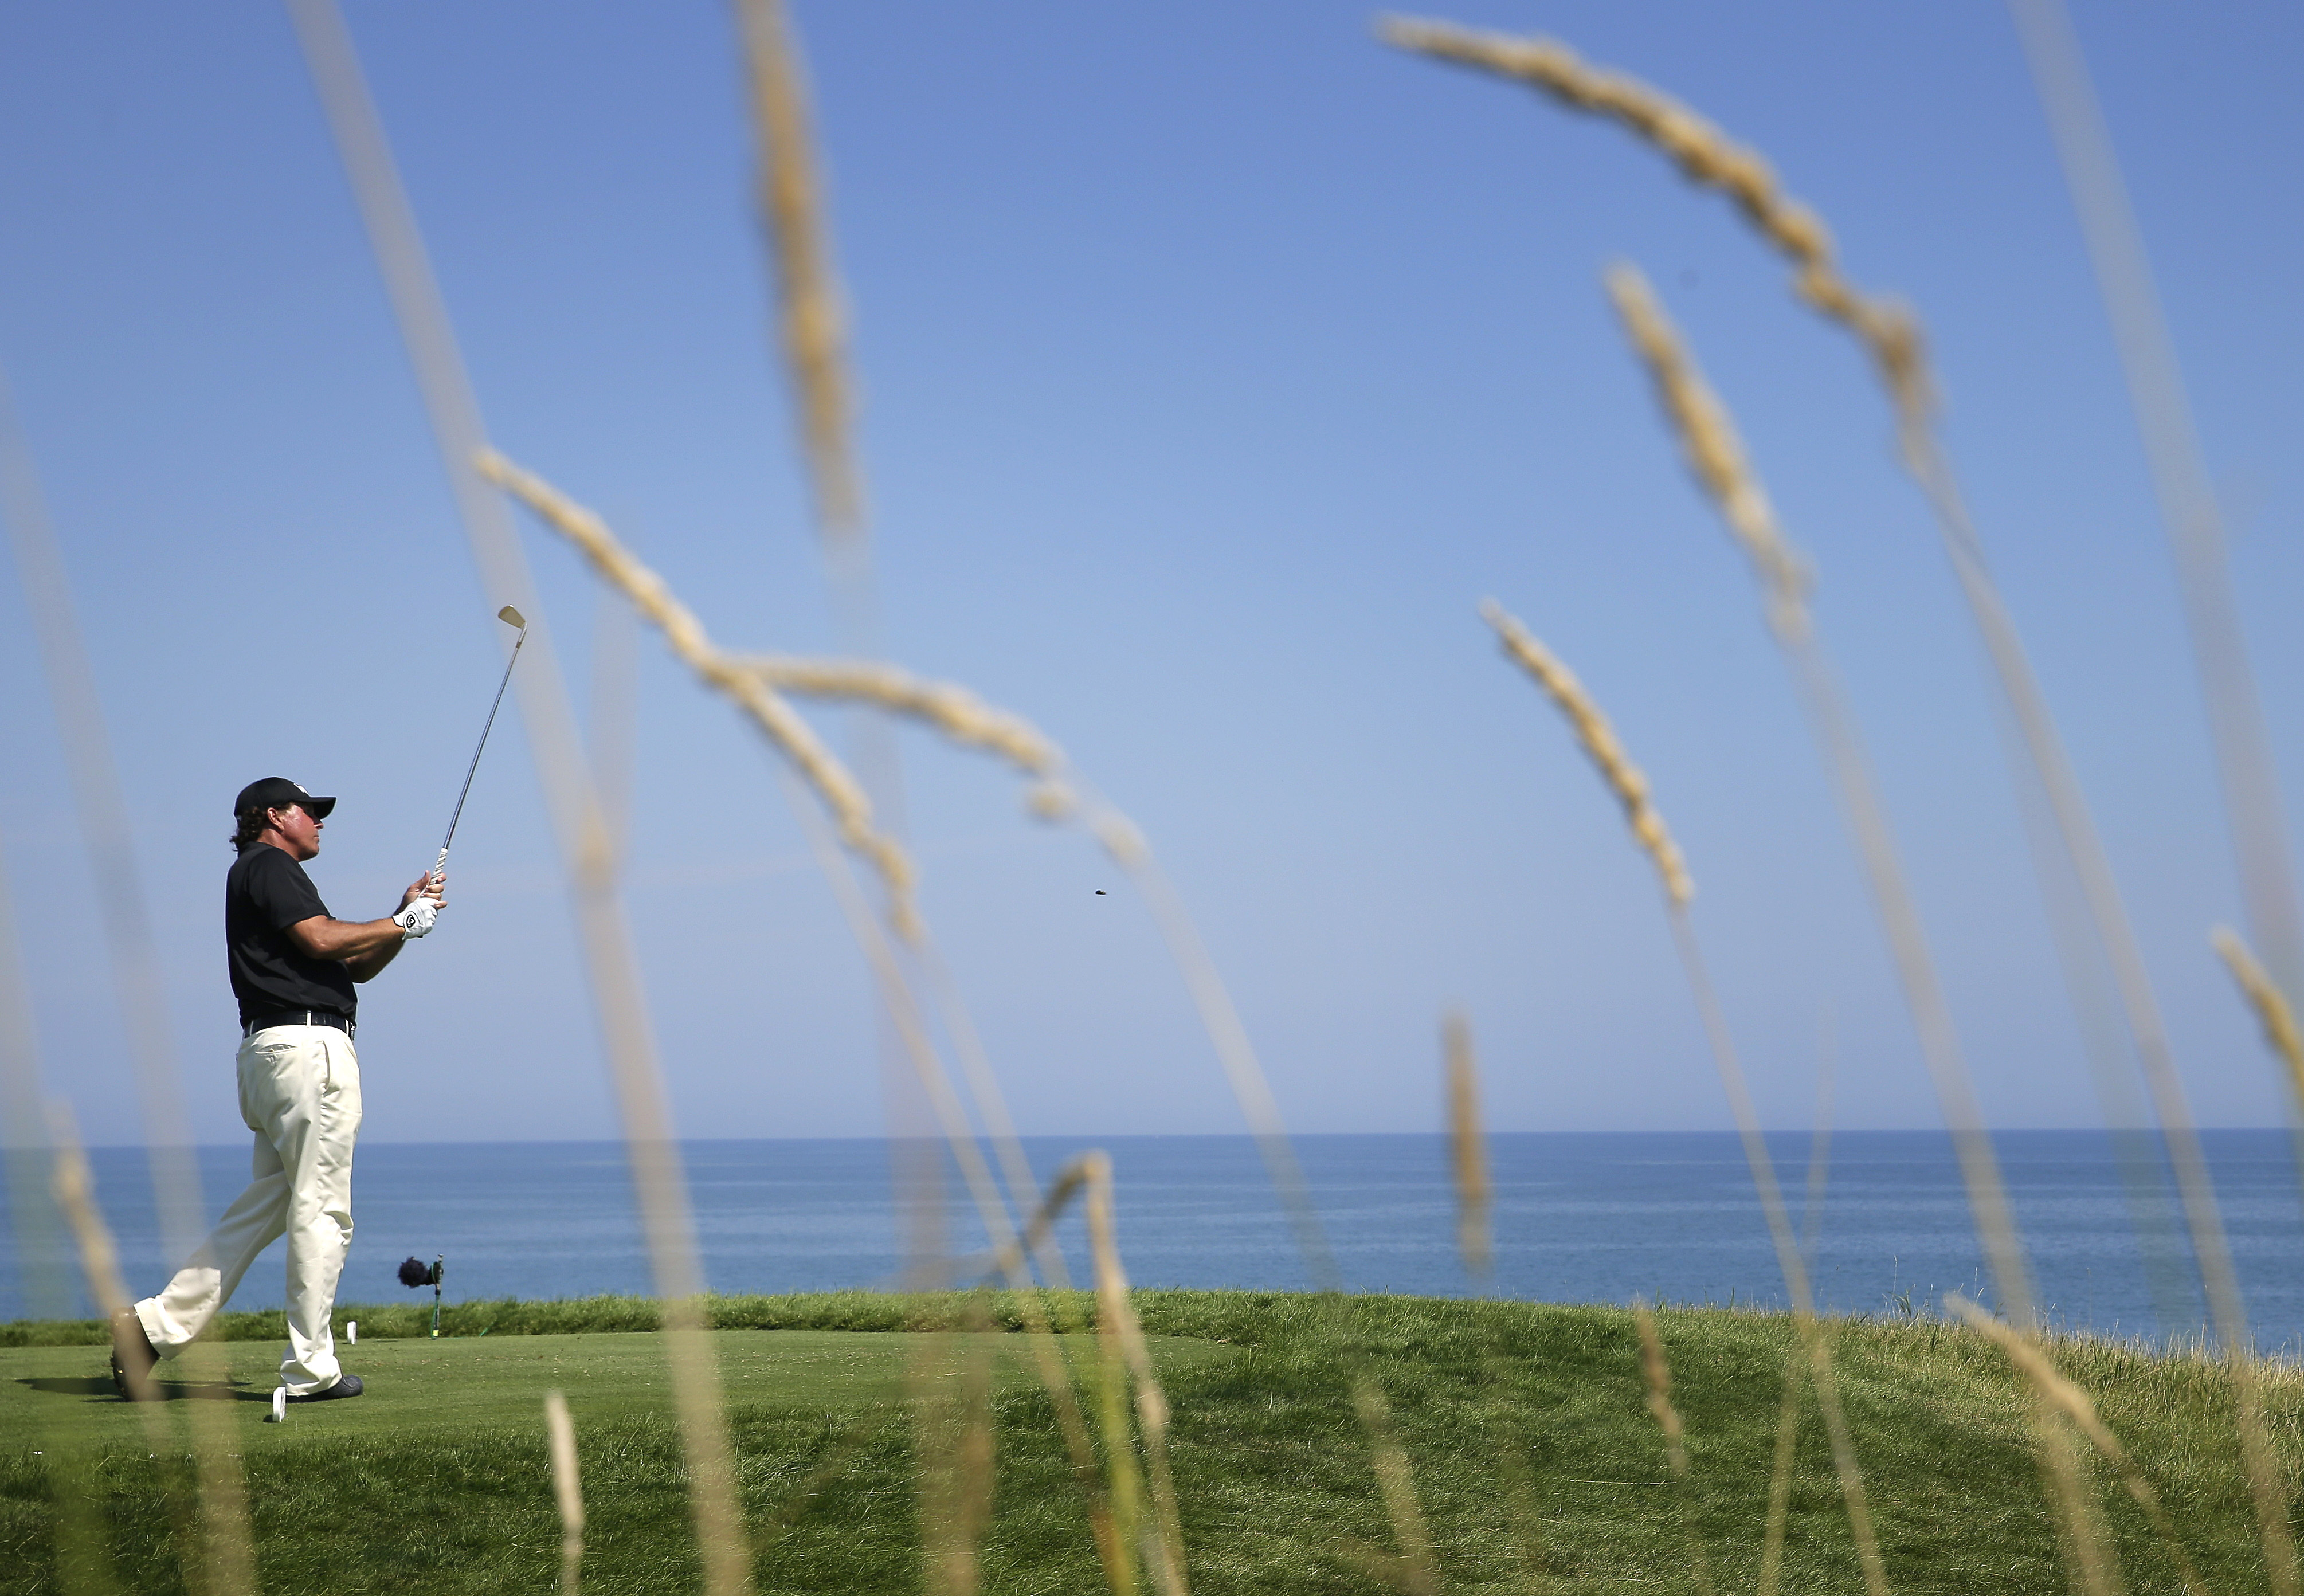 Phil Mickelson hits a tee shot on the 17th hole during the third round of the PGA Championship Saturday, Aug. 15, 2015, at Whistling Straits in Haven, Wisconsin.